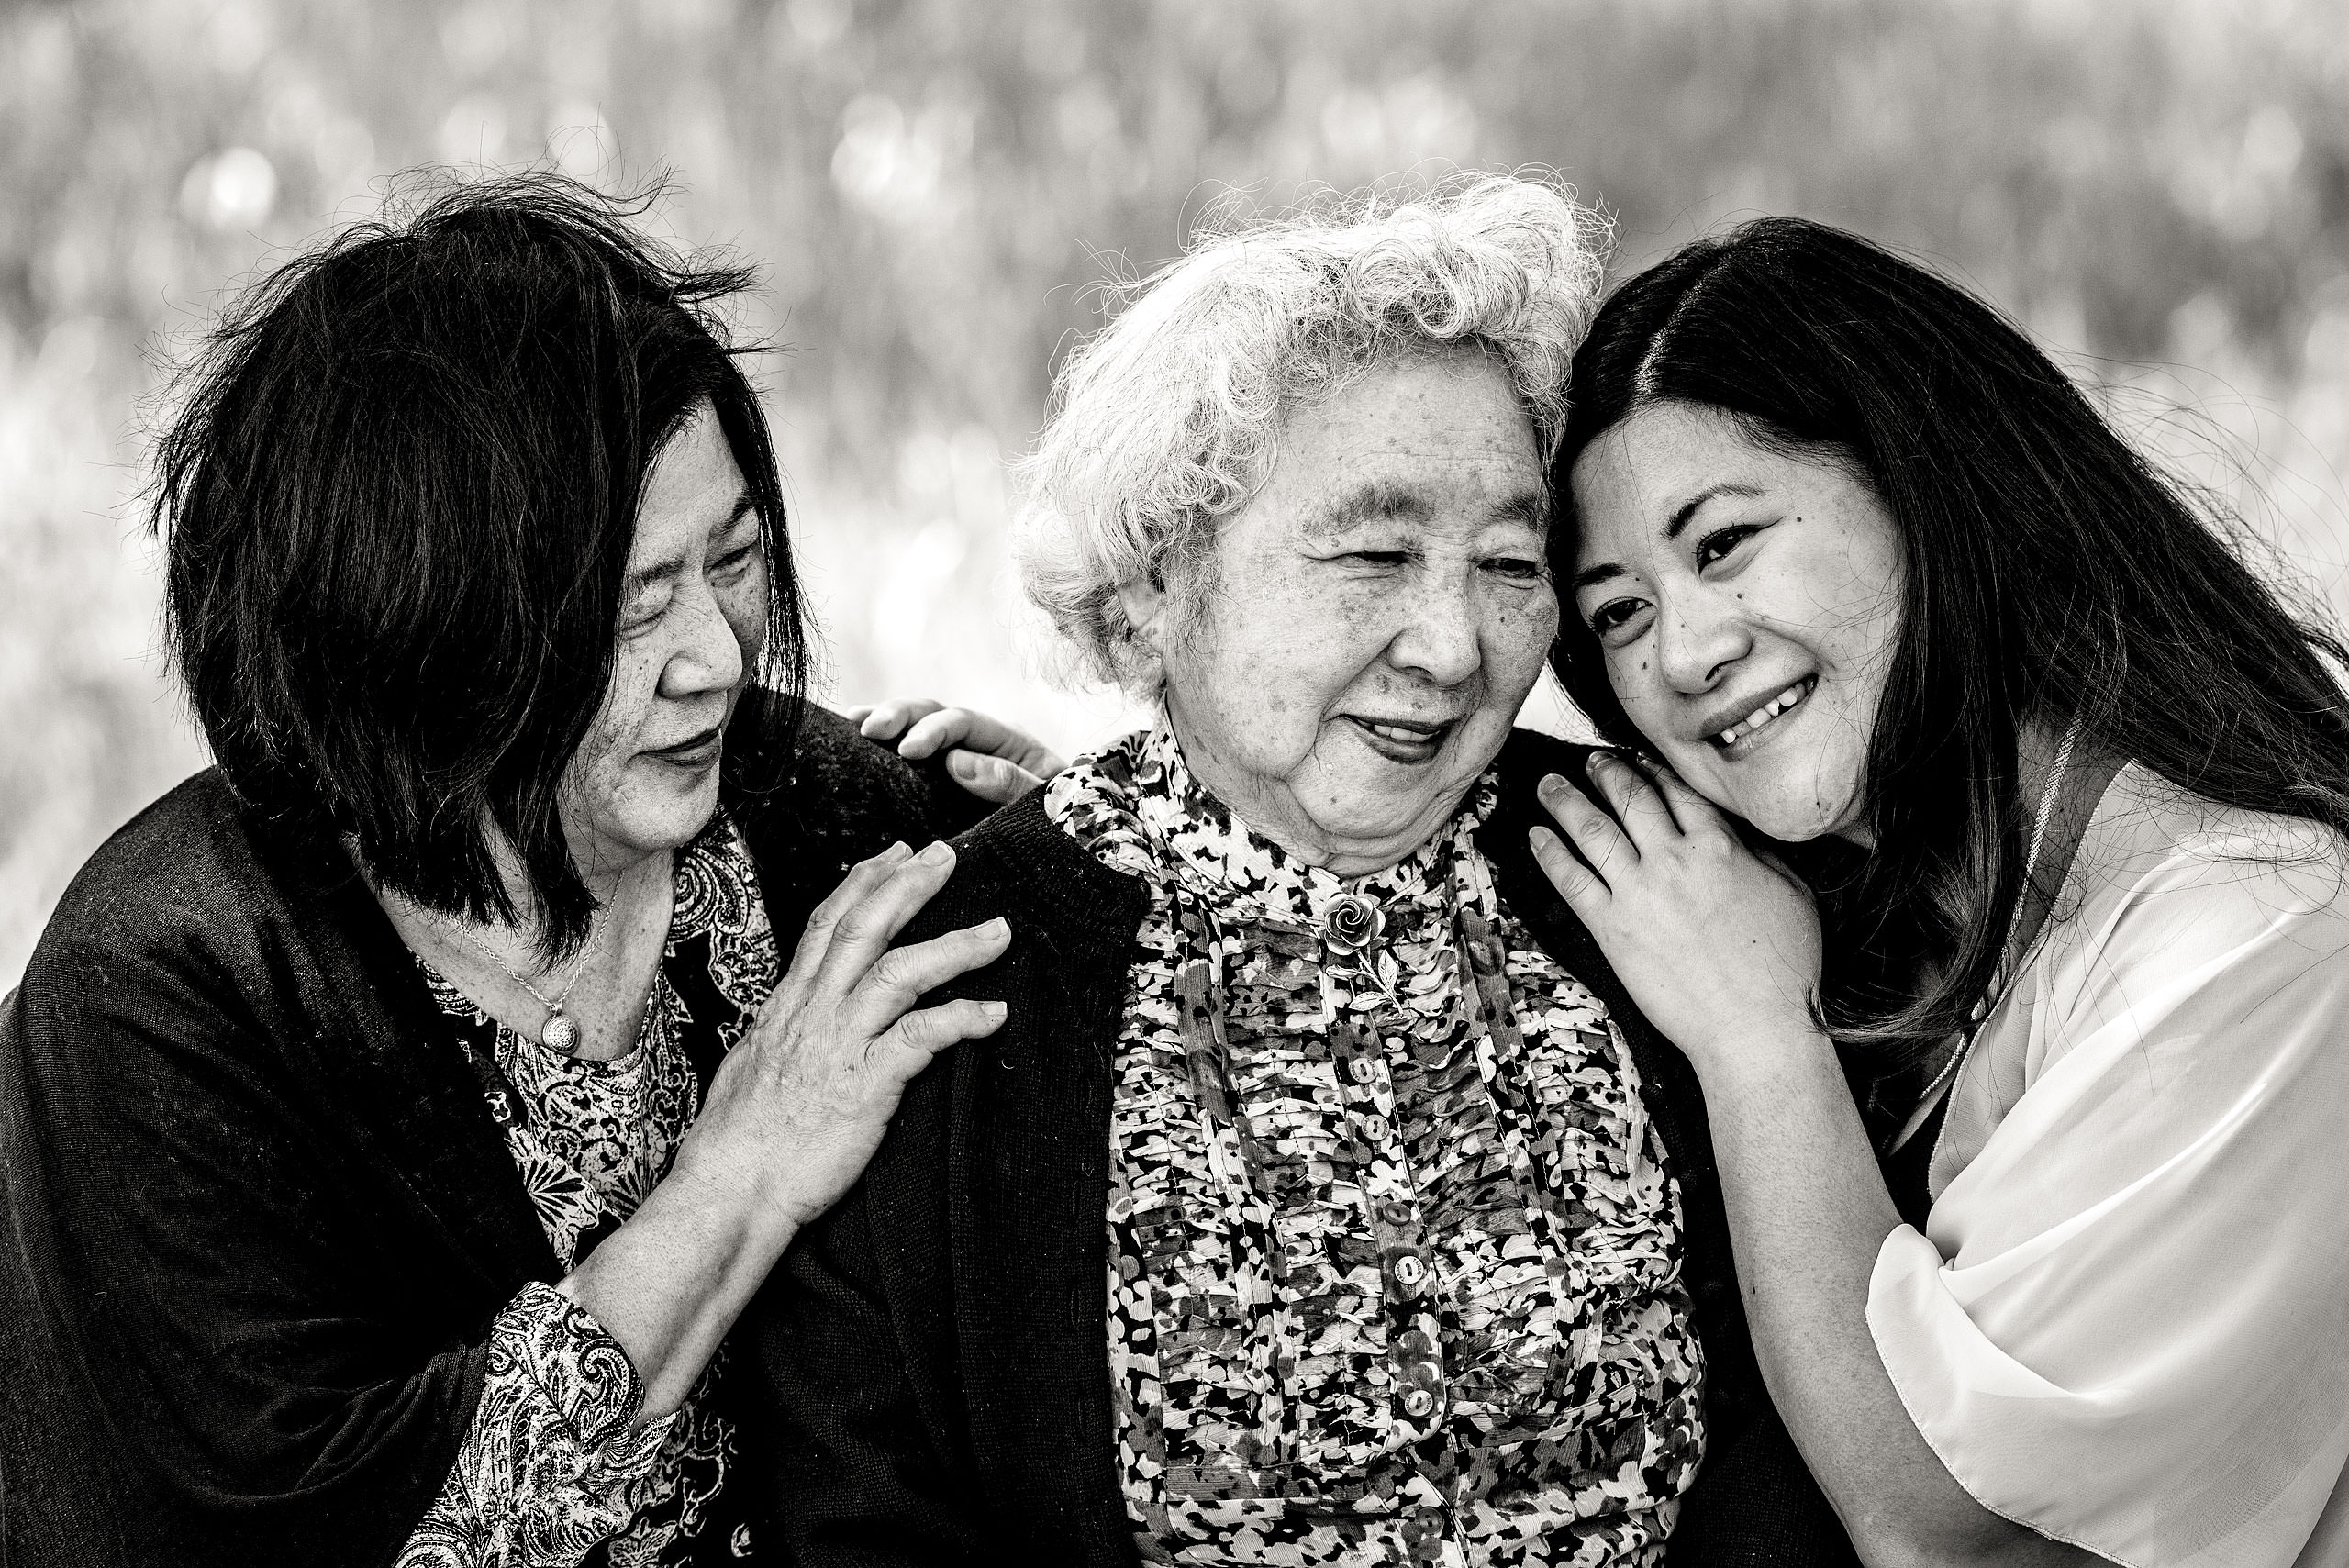 a grandmother mother and daughter sharing a special moment together by Calgary Maternity Photographer Sean LeBlanc